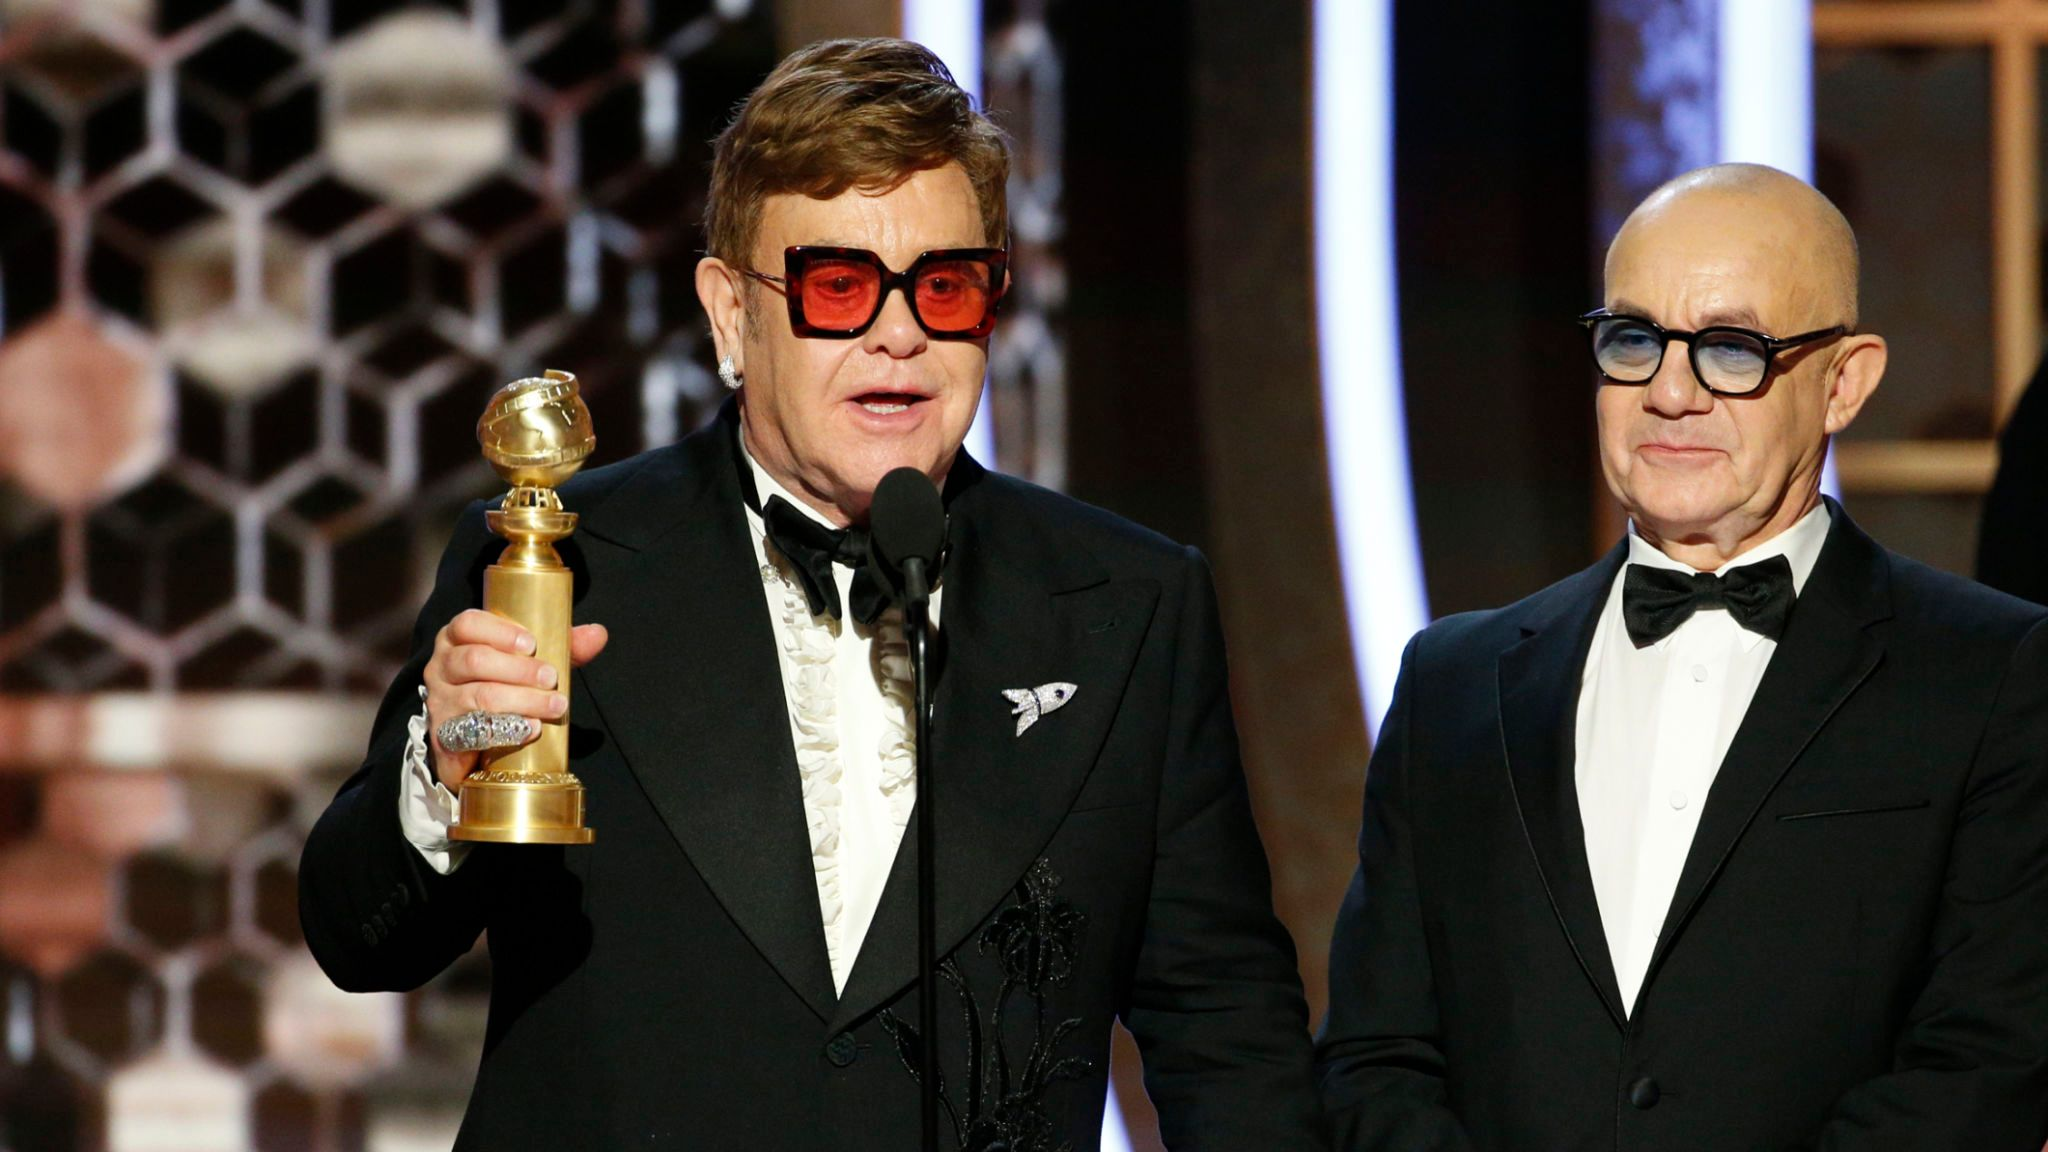 Golden Globes 2020 winner Elton John on stage